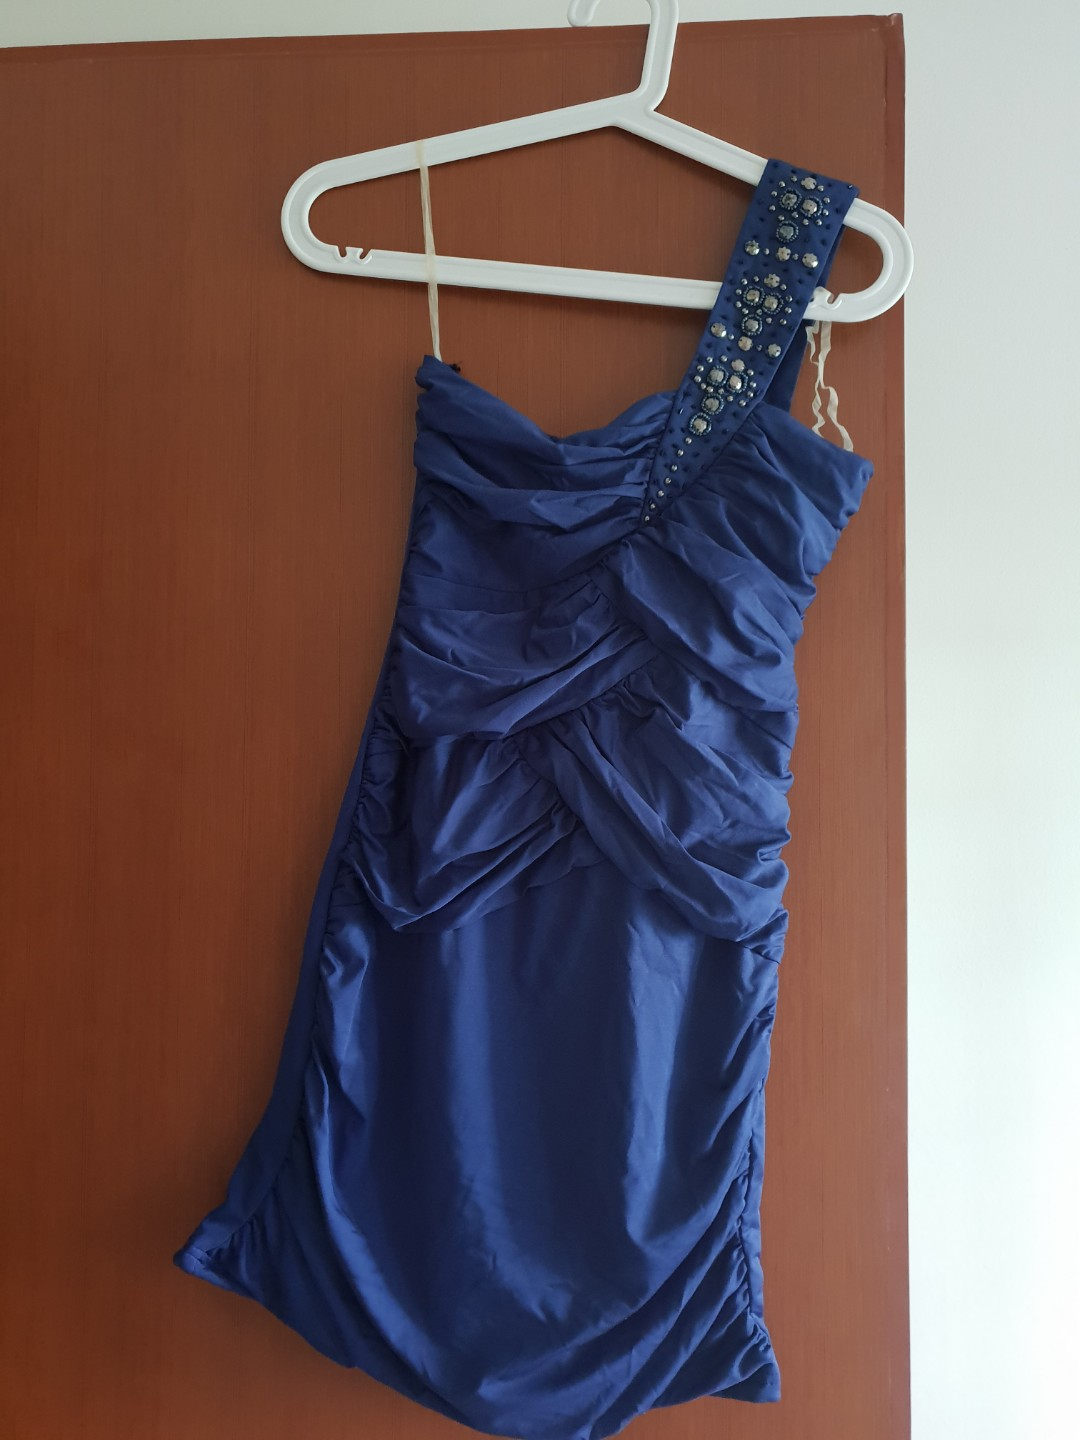 f96b7c61827 Pre-loved Dark blue toga bandage dress with embellishment